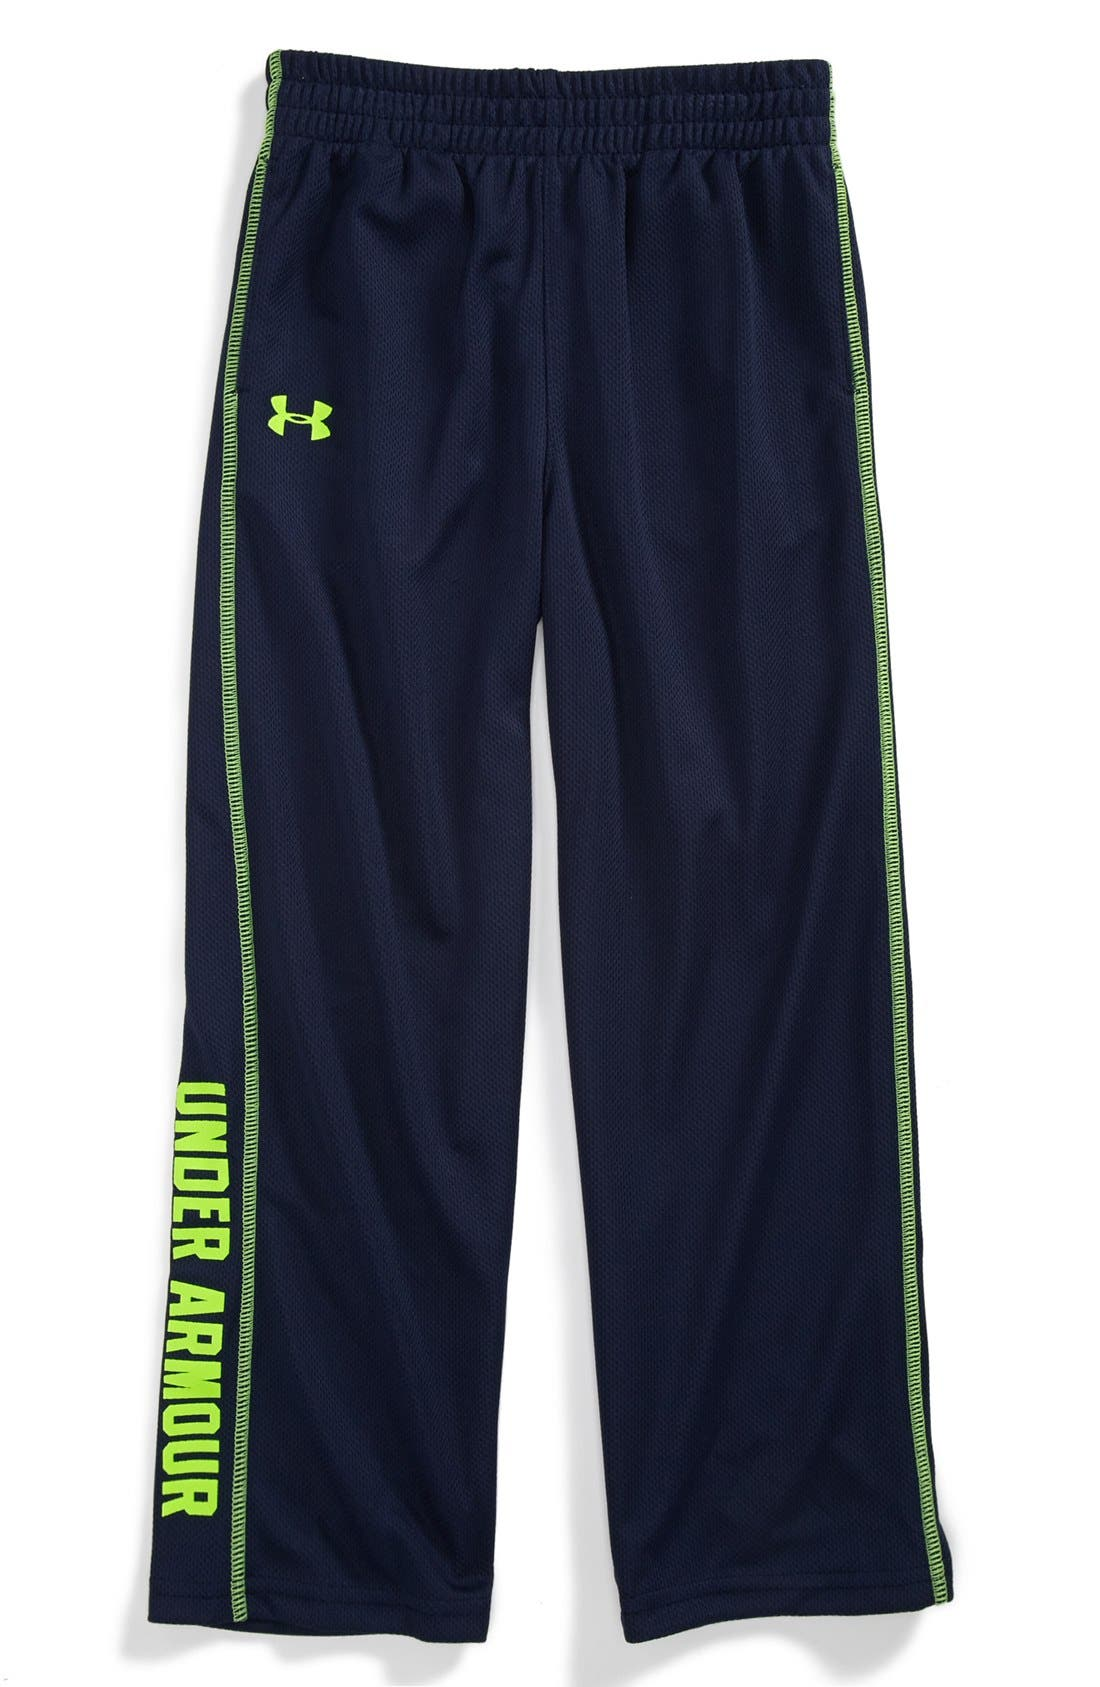 Main Image - Under Armour 'Root' Pants (Little Boys)